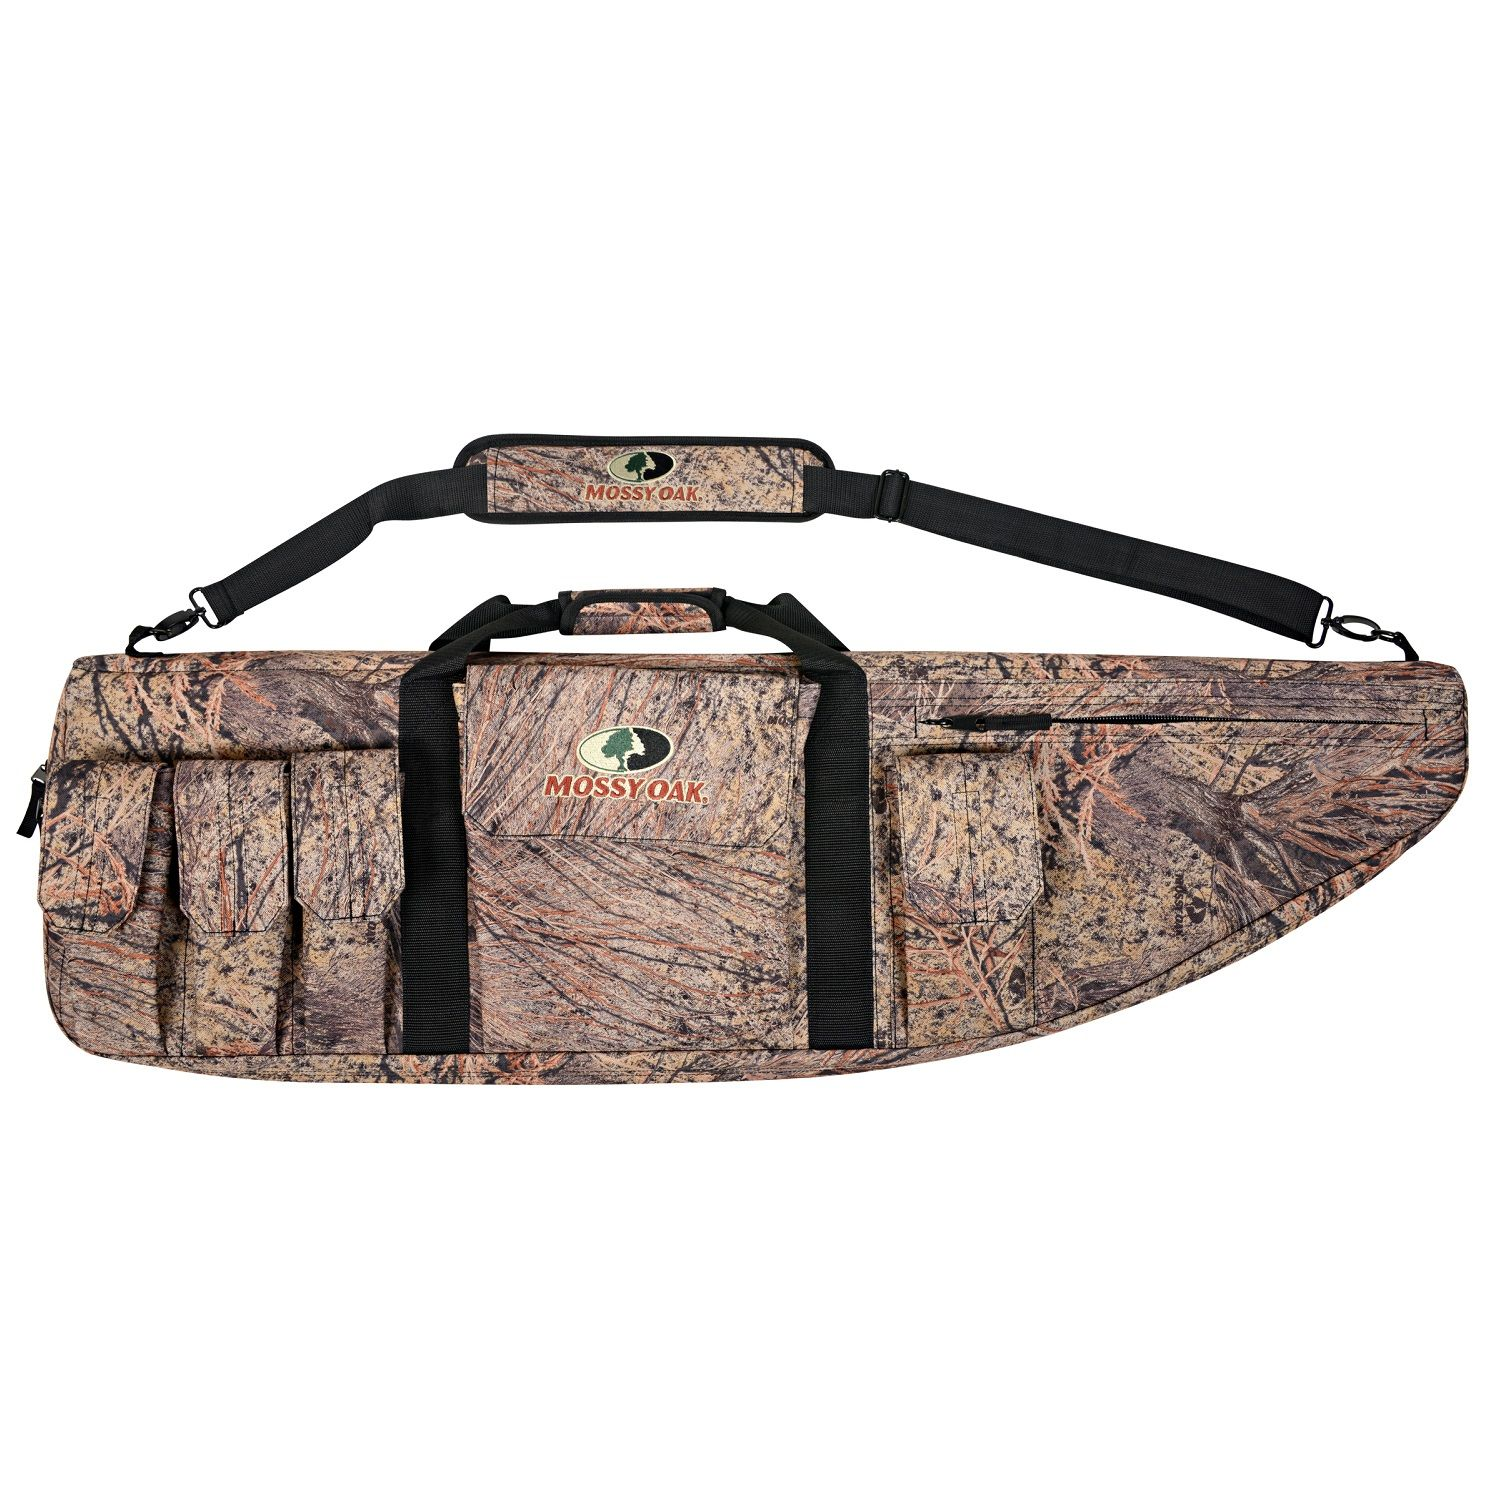 Чехол для винтовки Mossy Oak Hunt Hailstone Predator Tactical Rifle Case